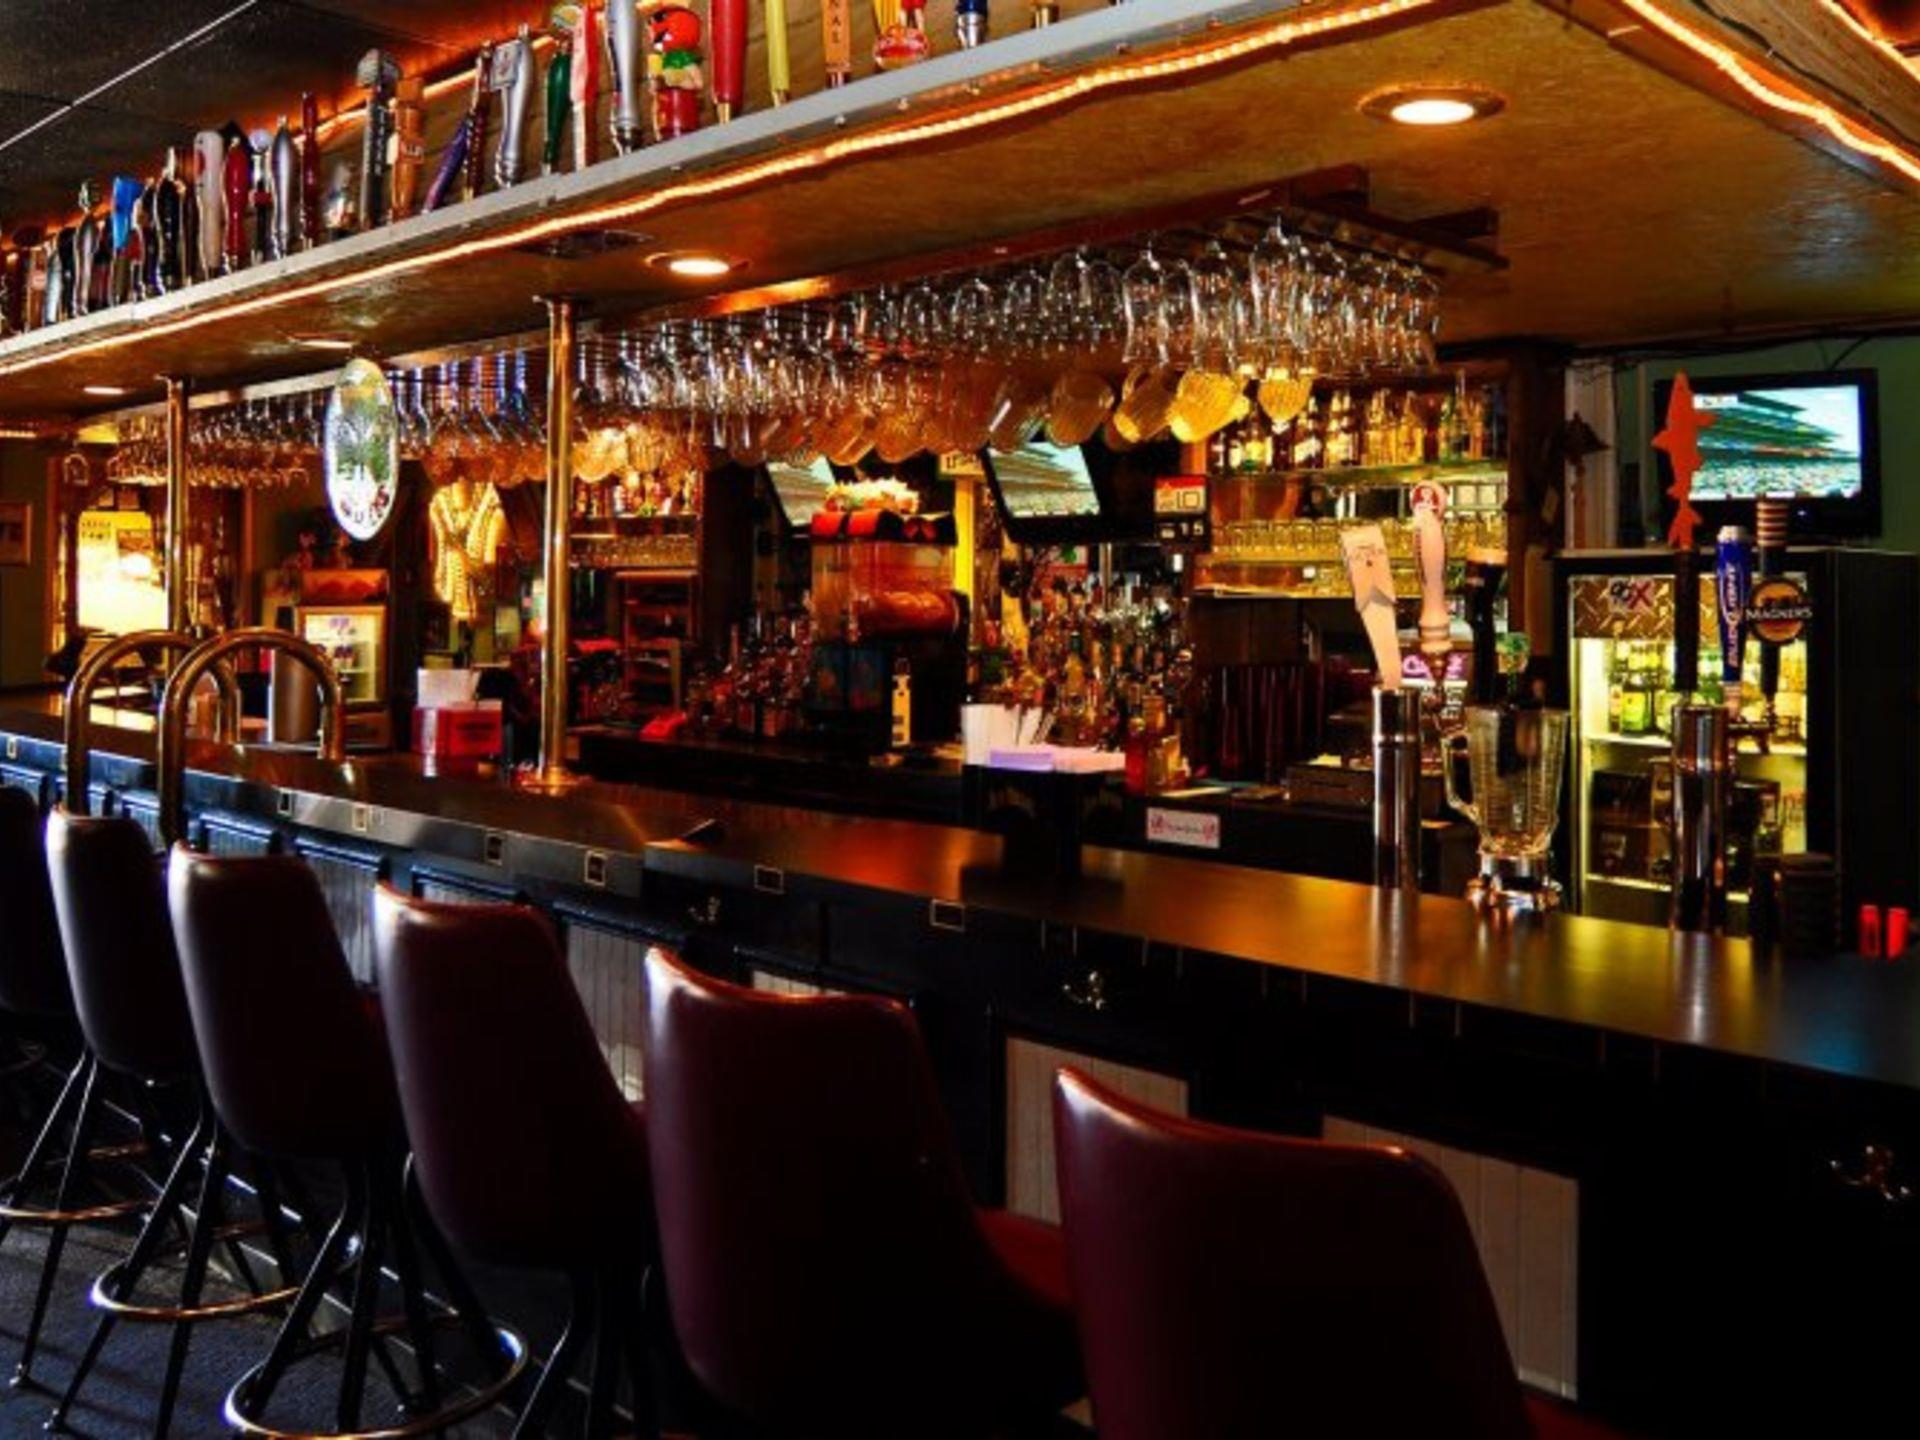 Bar area with chairs set up beside the bar-top with beer taps and glasses hanging from the ceiling